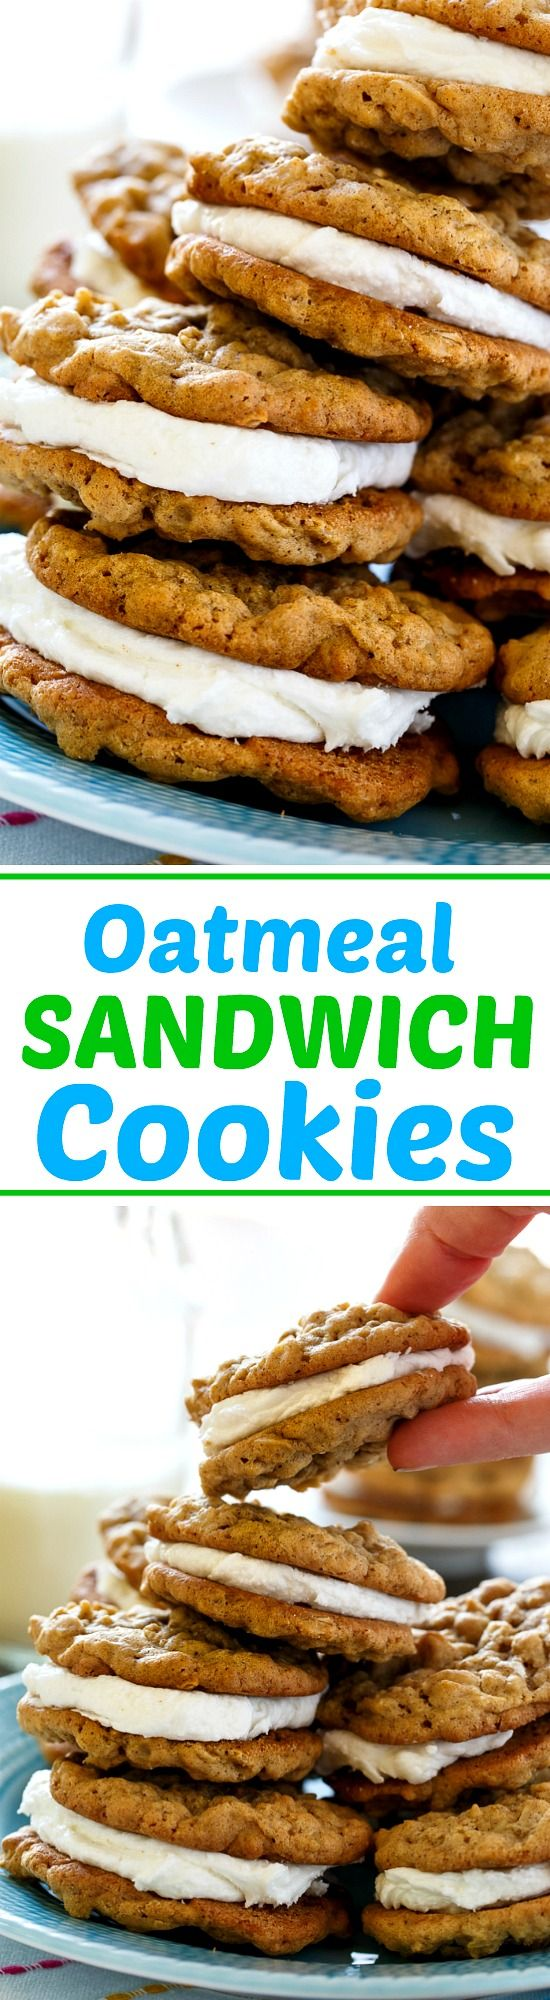 Oatmeal Cream Sandwiches Recipe — Dishmaps